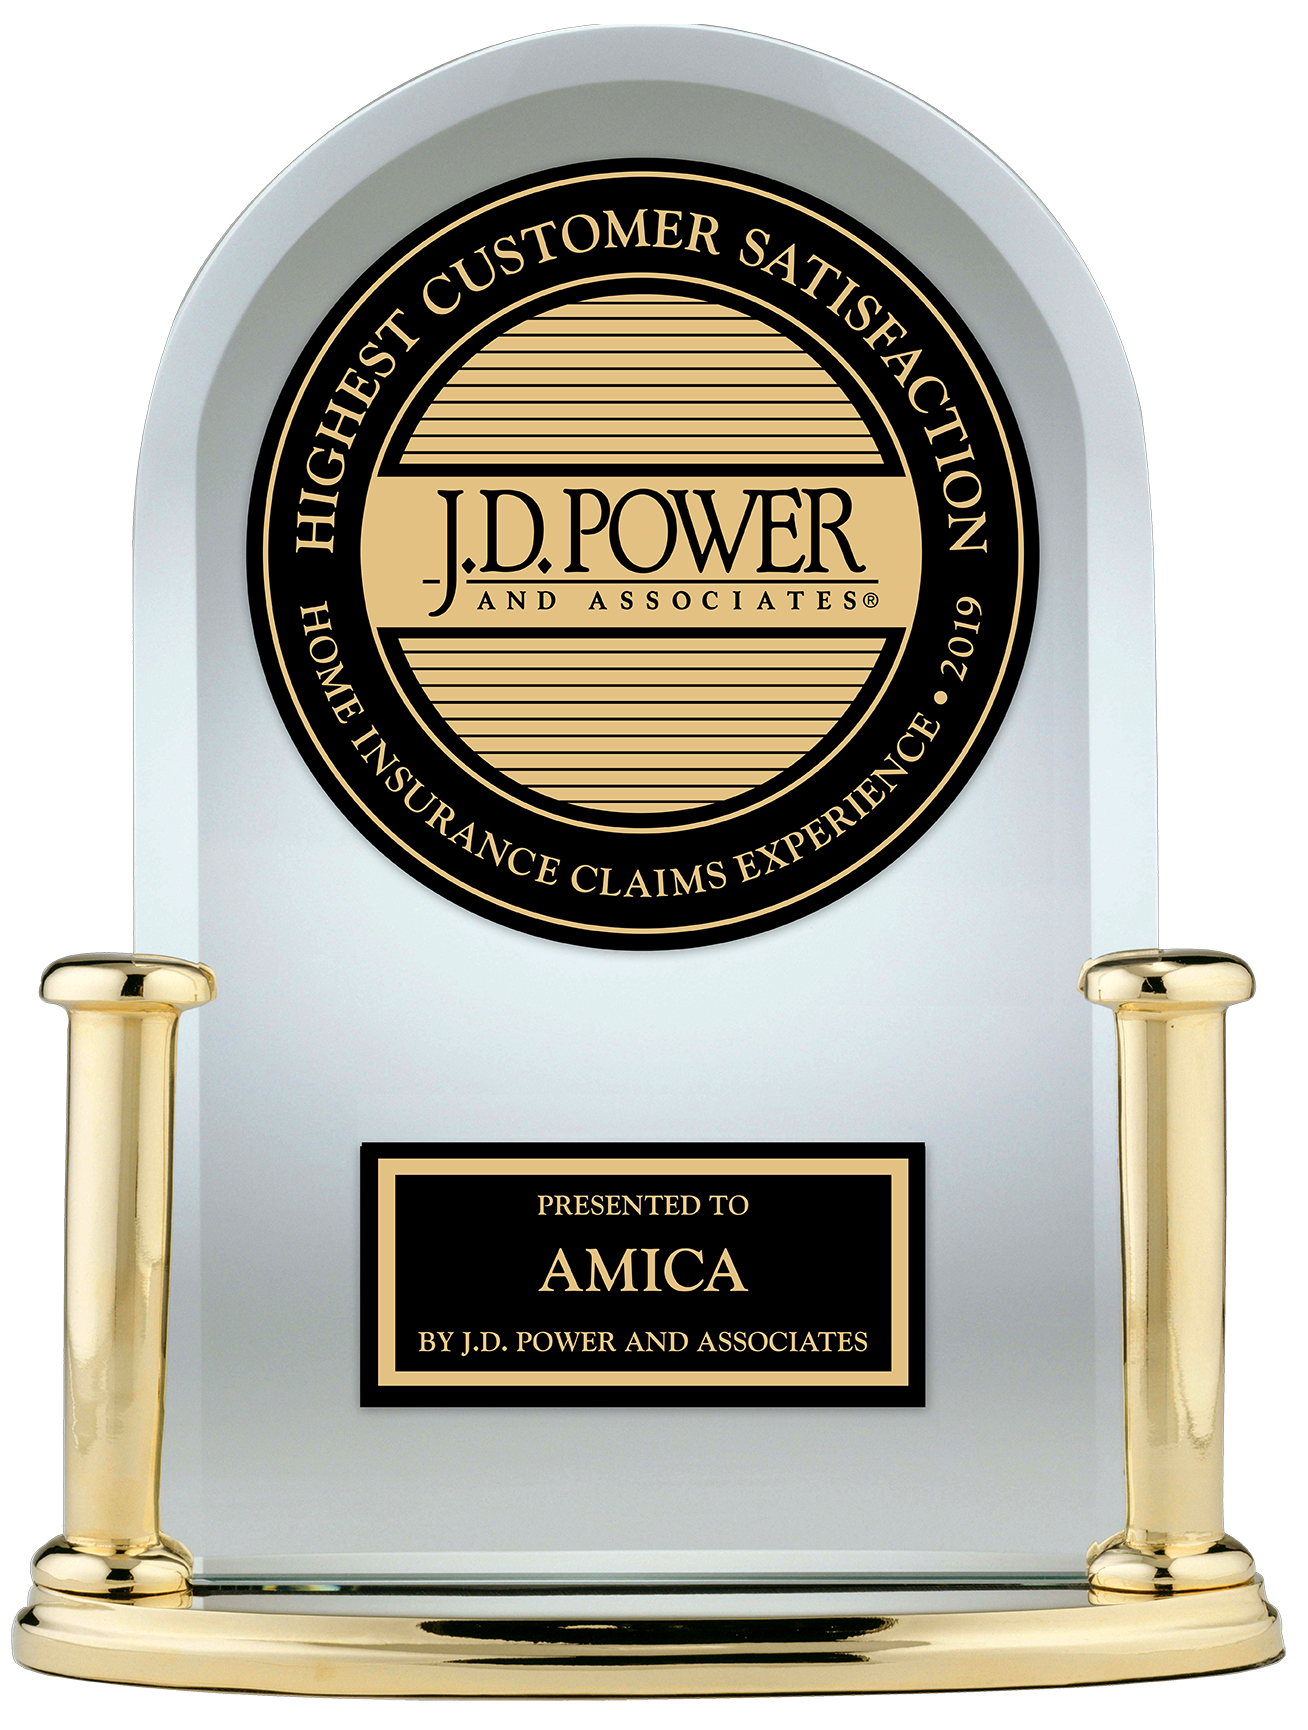 J.D. Power Highest Customer Satisfaction Home Insurance Claims Experience 2019 presented to Amica by J.D. Power and Associates